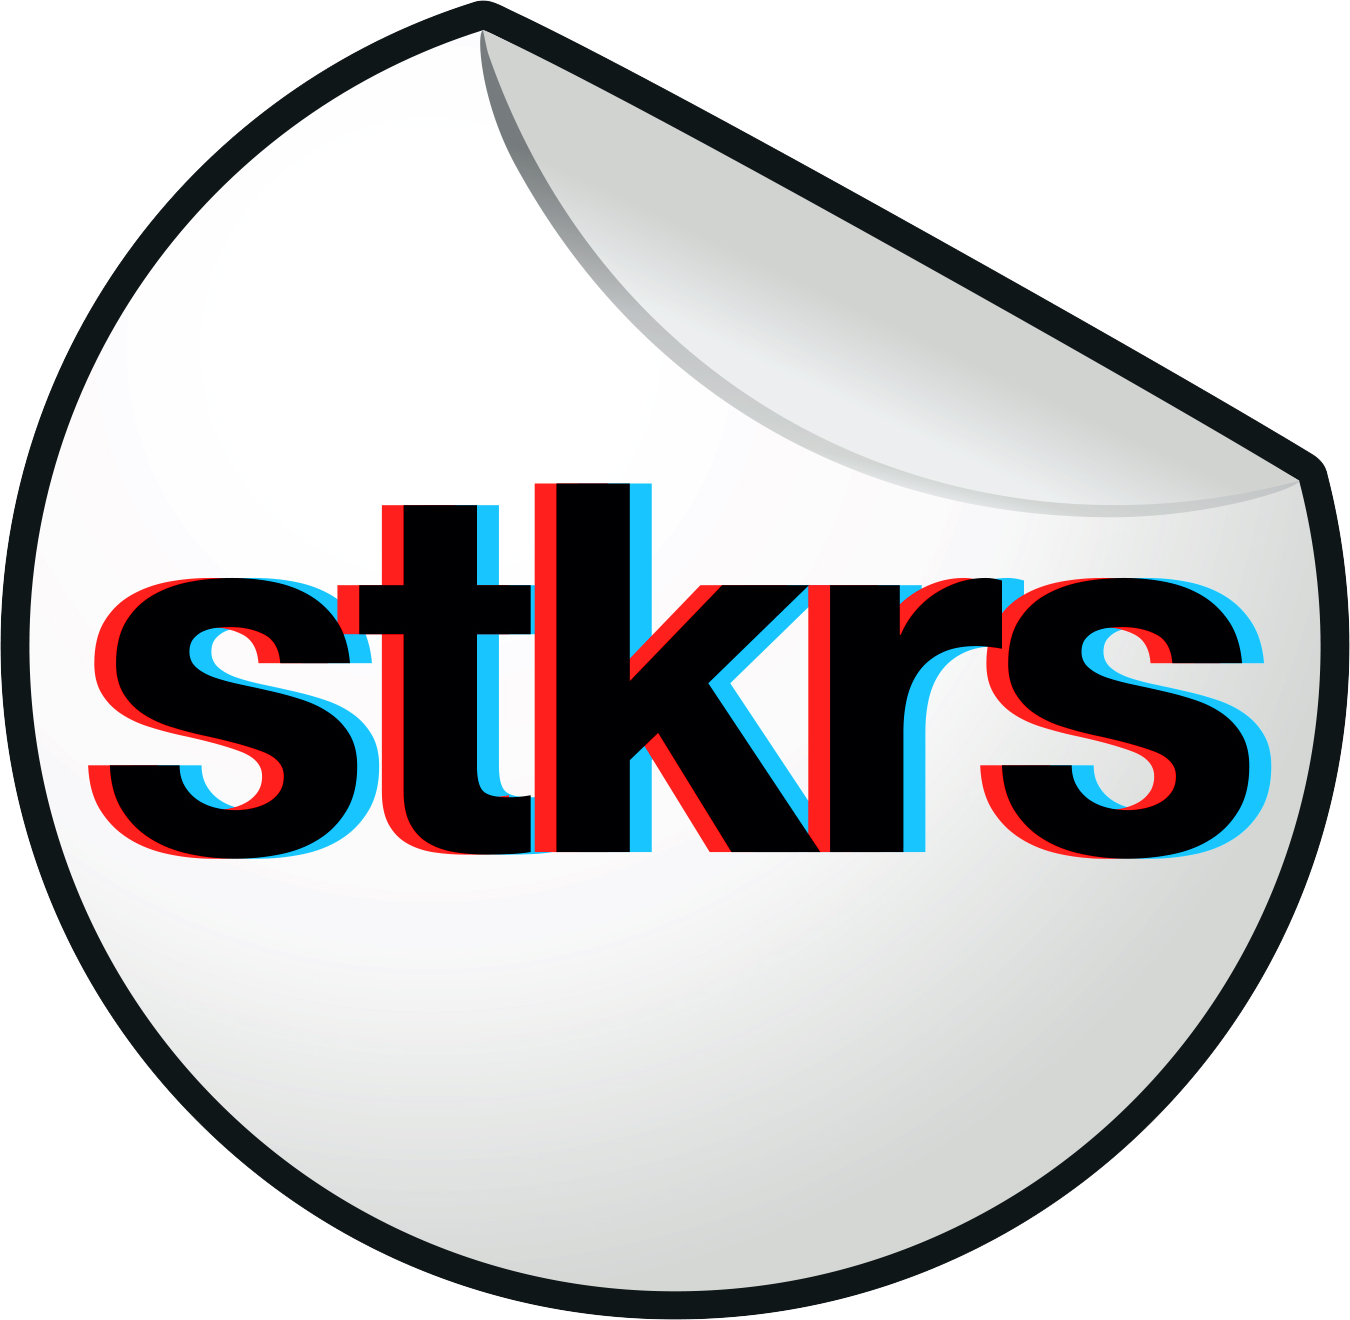 Startup-Stickers-logo.png